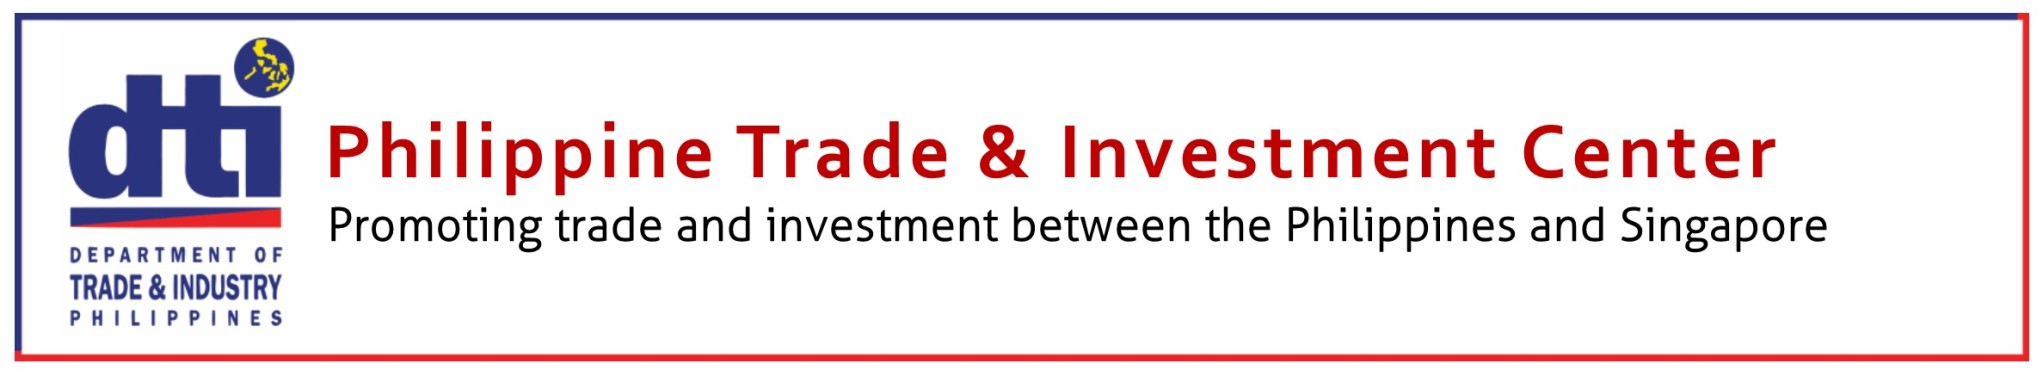 THE PHILIPPINE TRADE & INVESTMENT CENTRE